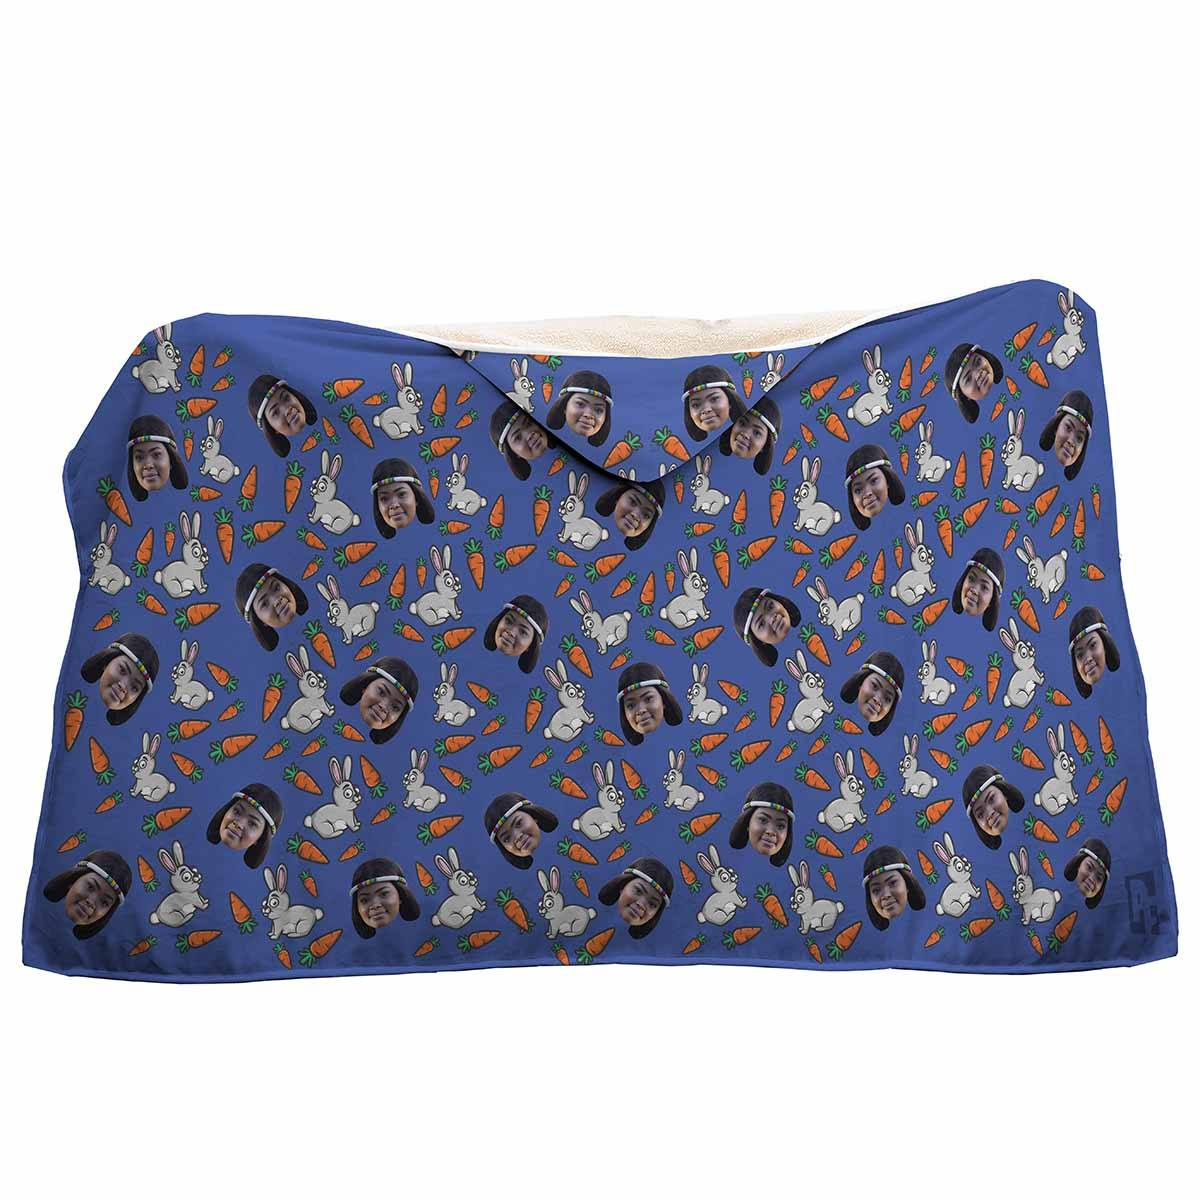 darkblue Bunny hooded blanket personalized with photo of face printed on it